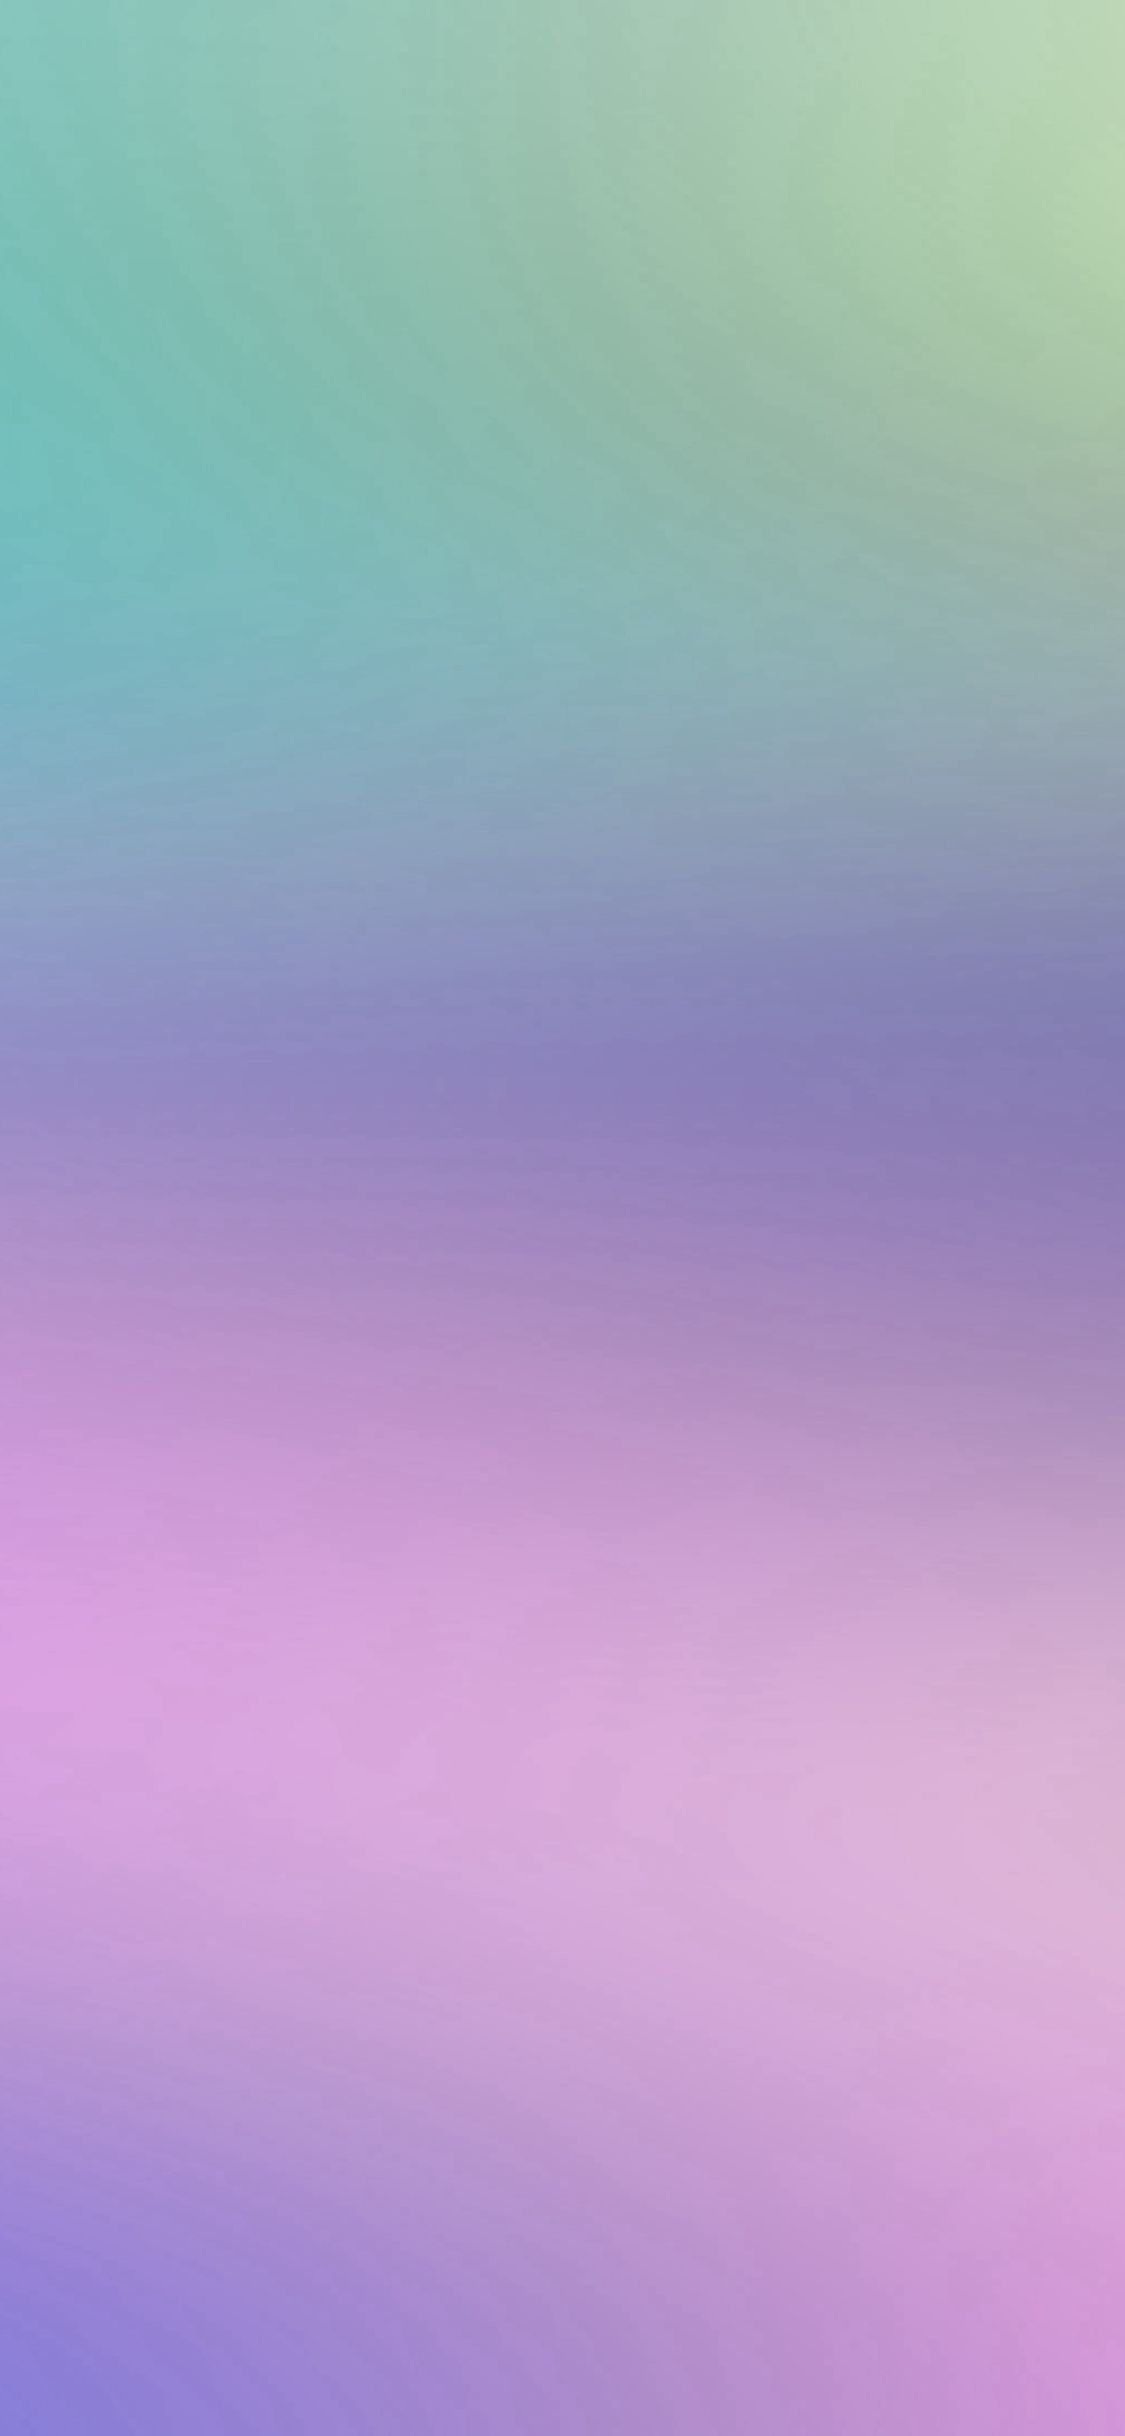 Blue And Purple Blur Gradation Background Iphone X